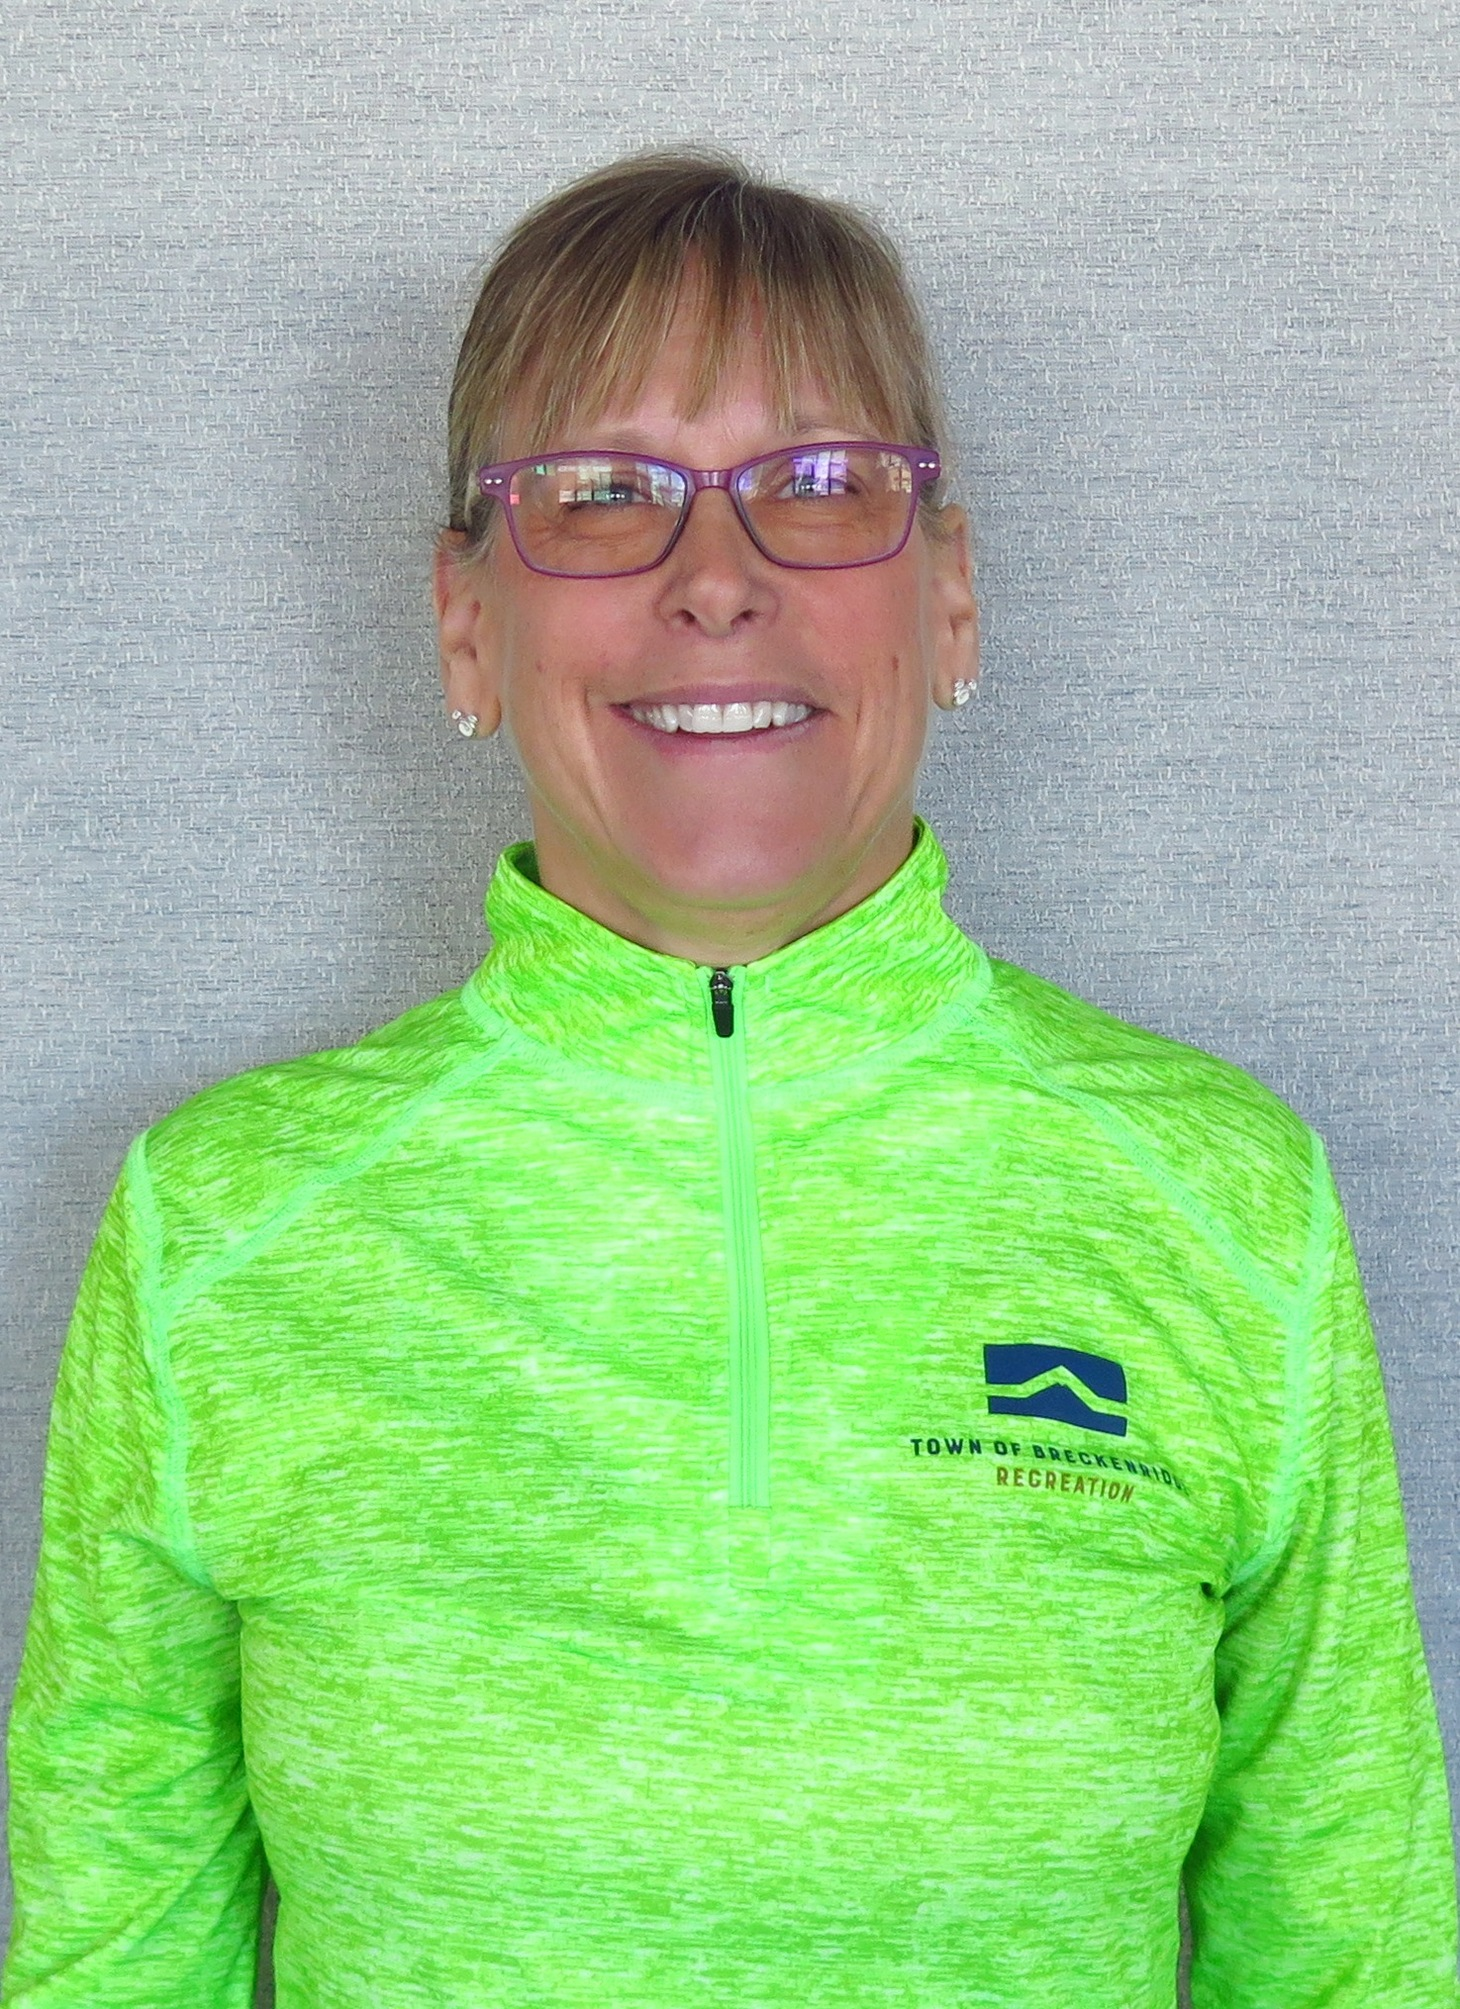 Head shot of Cathy Bohdan Breckenridge personal training in white and black athletic top